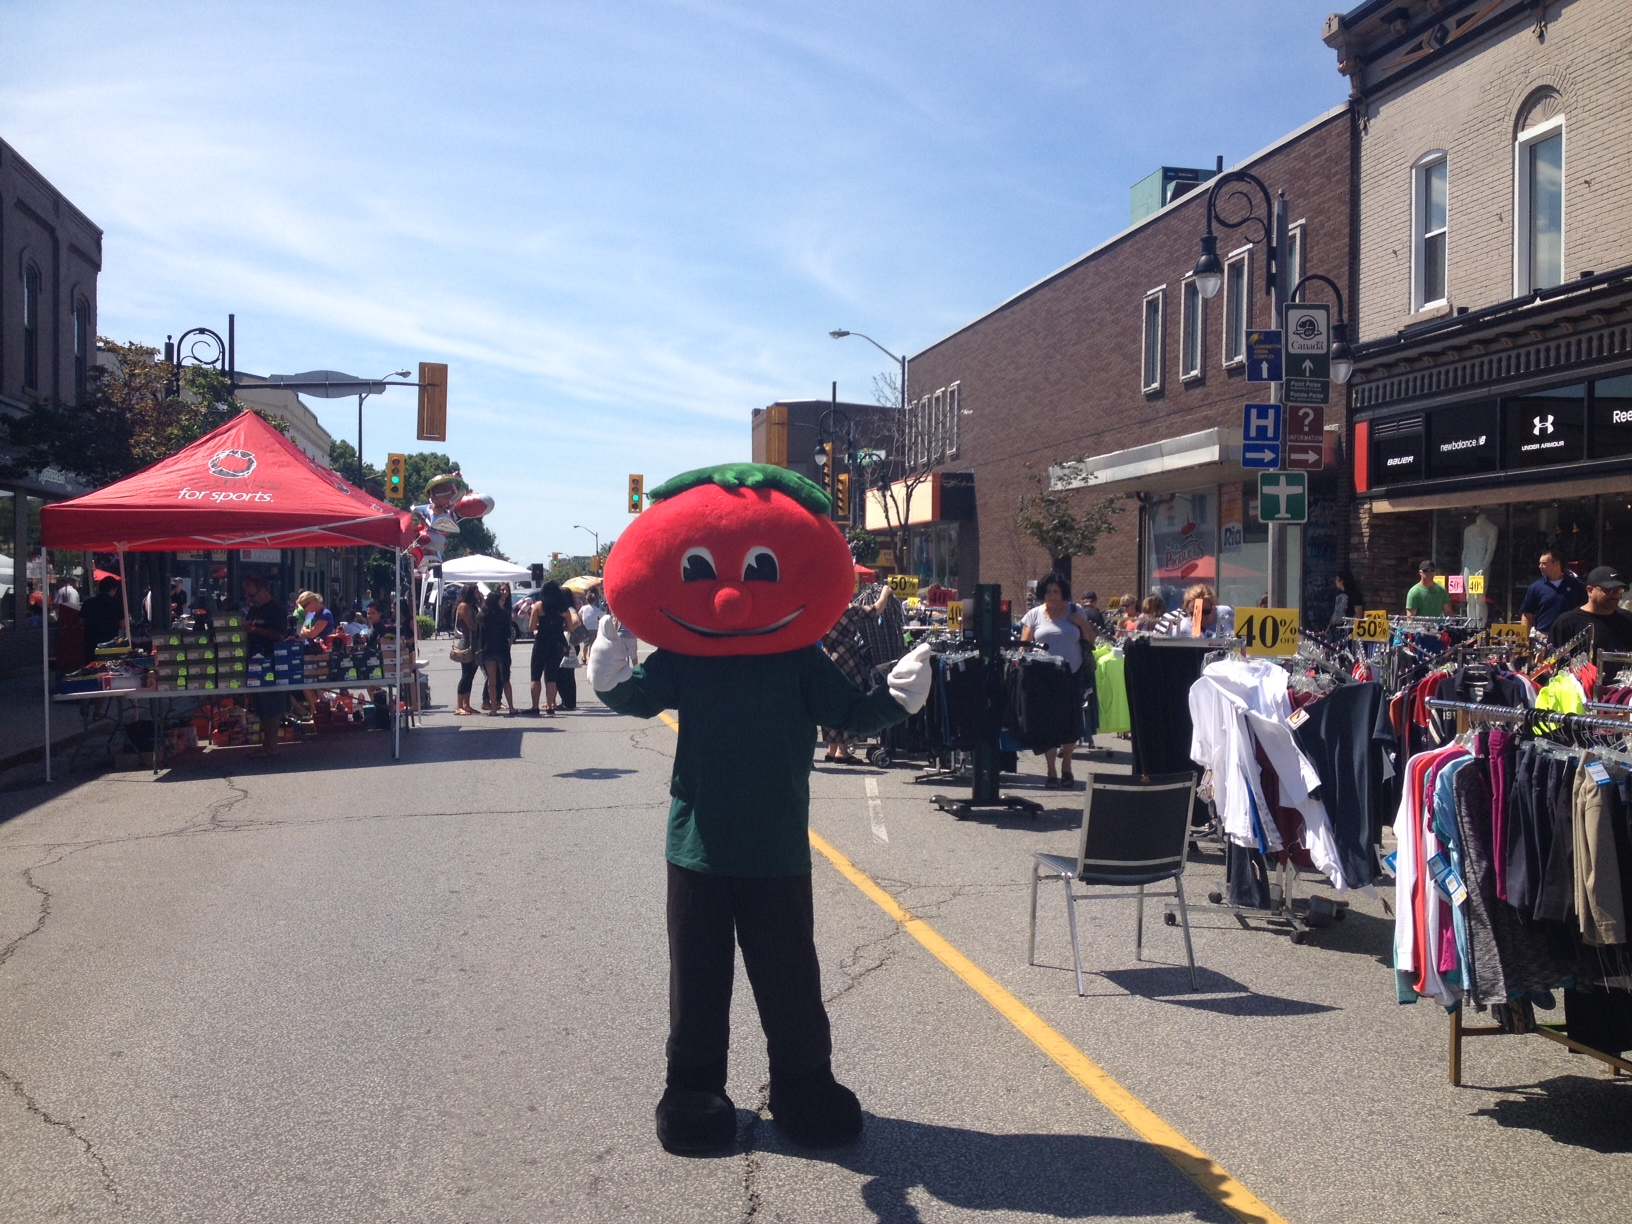 The Leamington Sidewalk Sale on July 26, 2014. (Photo by Kevin Black)